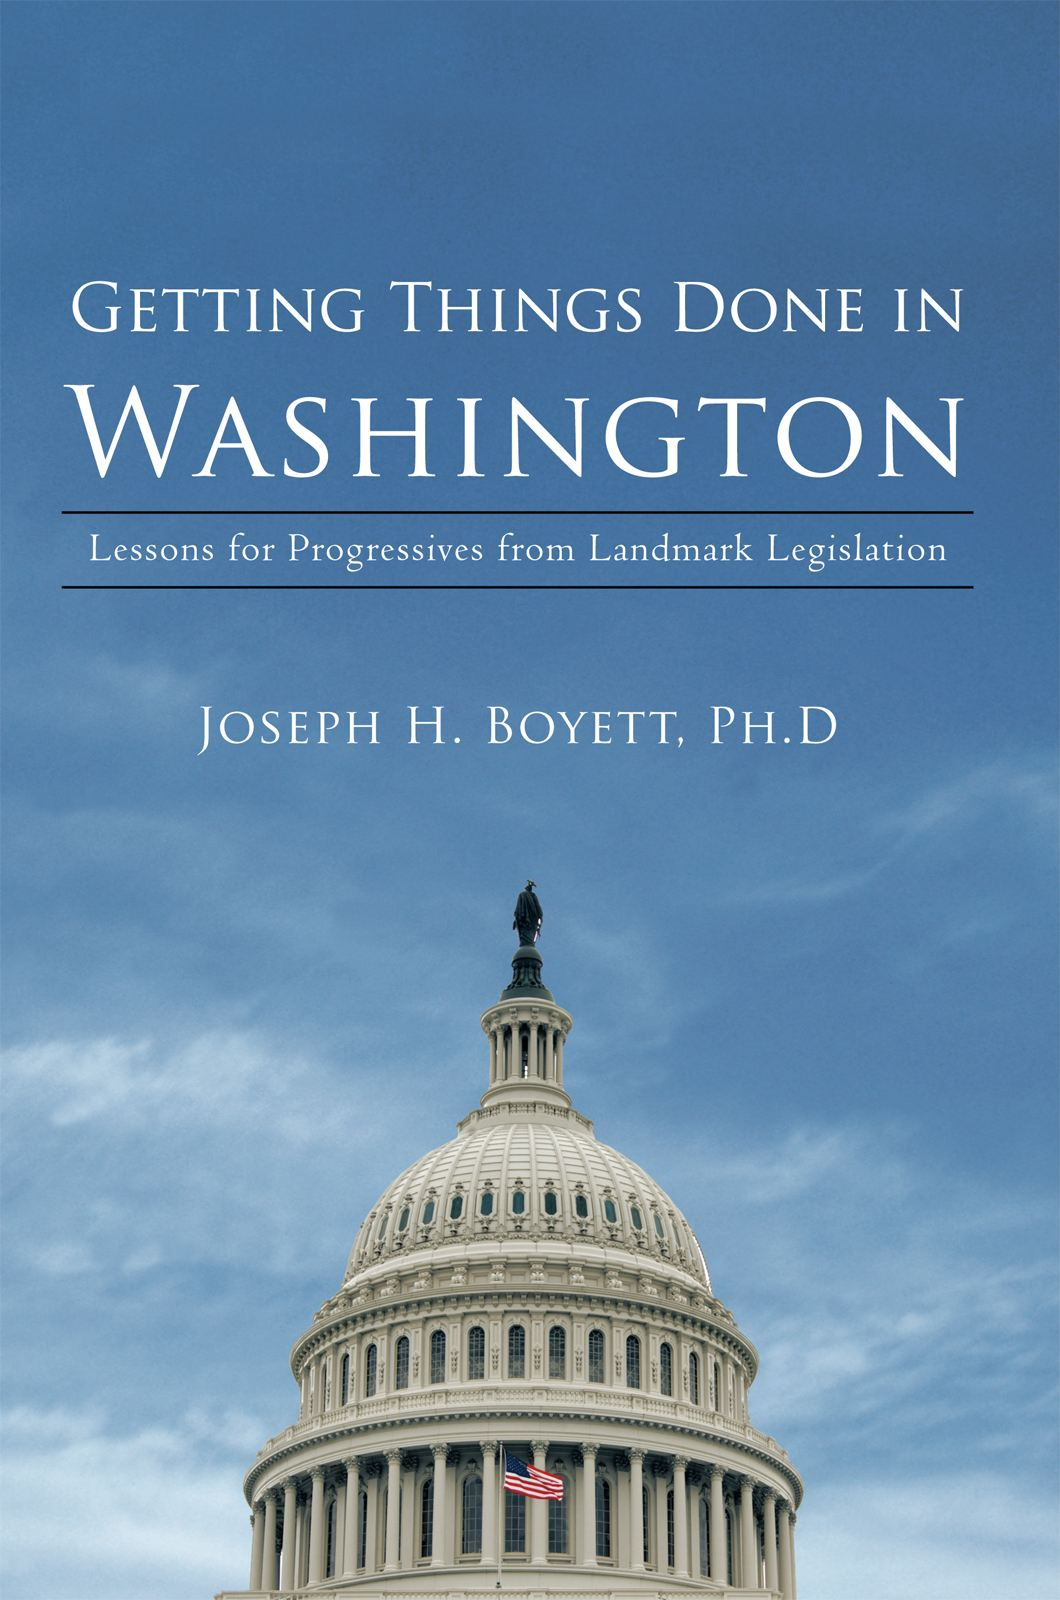 Getting Things Done in Washington